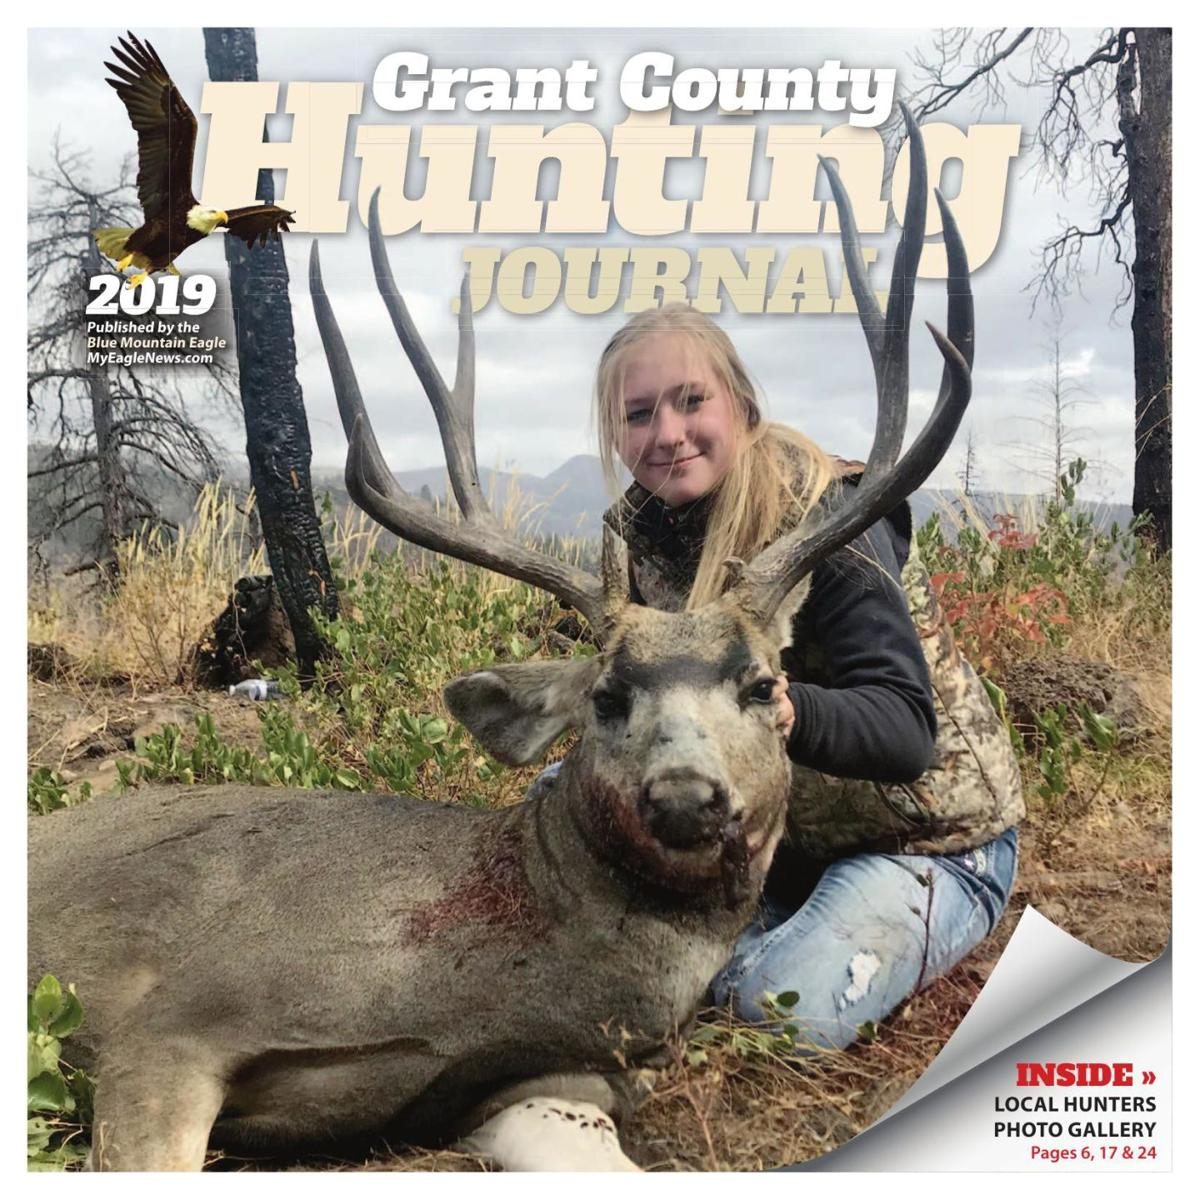 Grant County Hunting Journal 2019